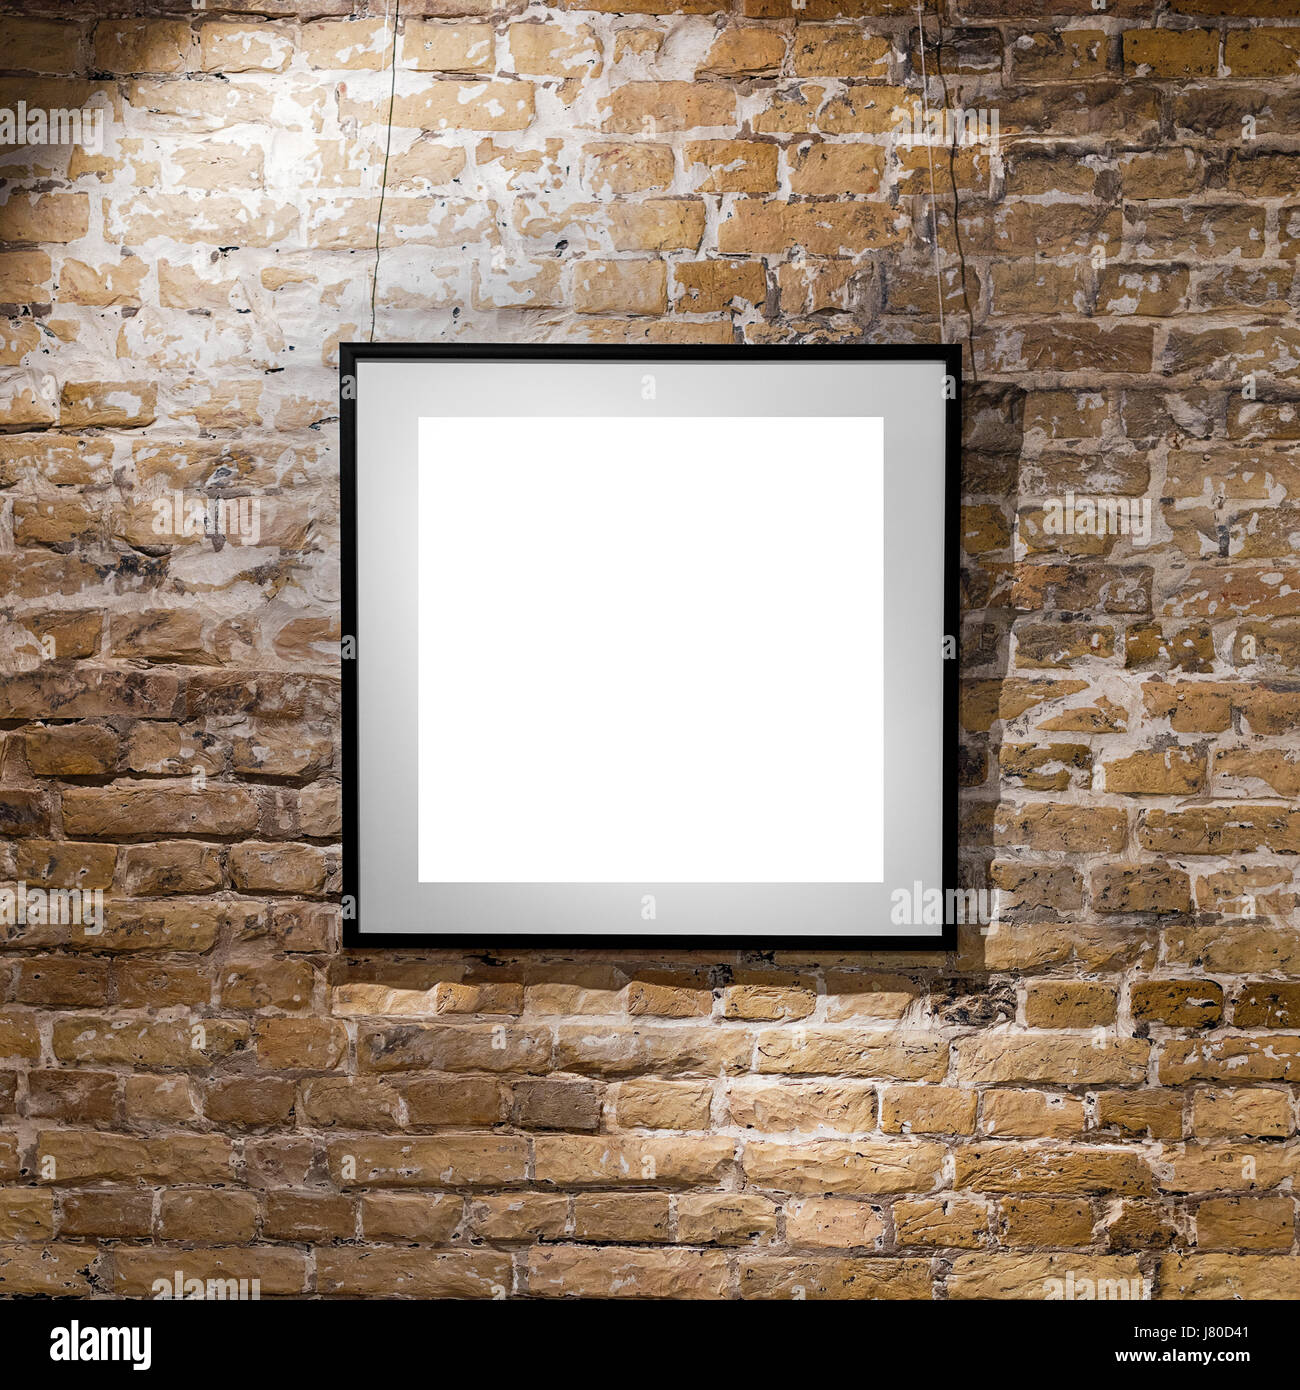 Empty frame on light brick wall. Blank space poster or art frame ...